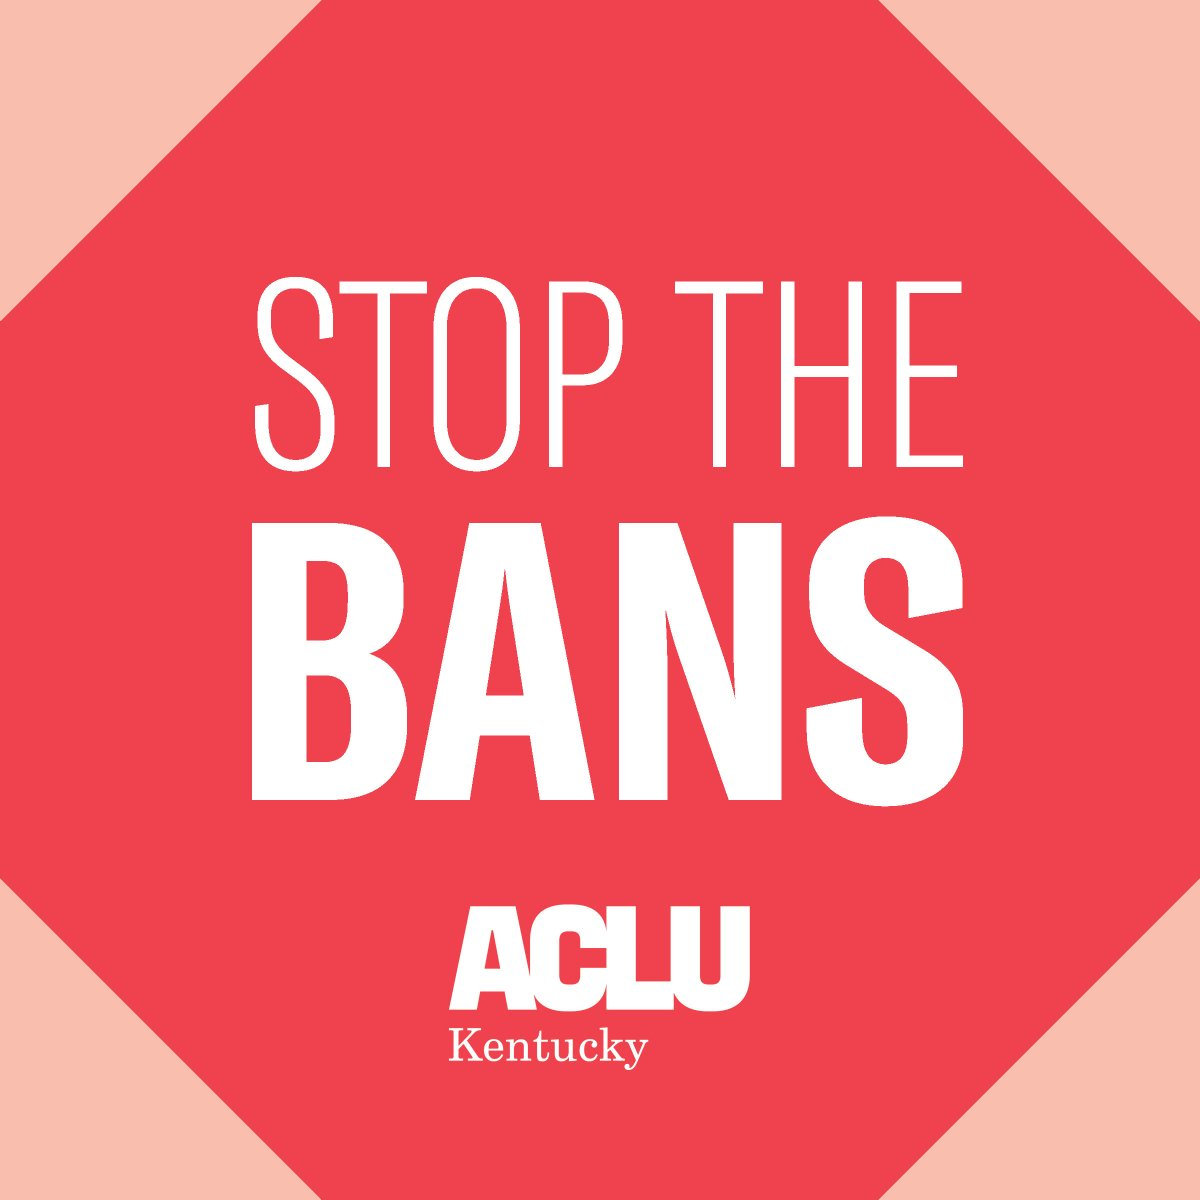 VOTE in Kentucky's Primary then PROTEST today for national #StoptheBans Day of Action.  Will we see you at the @PPAdvocatesINKY event at noon in at the Federal Bldg in Louisville? https://www.facebook.com/events/677906455978490/…